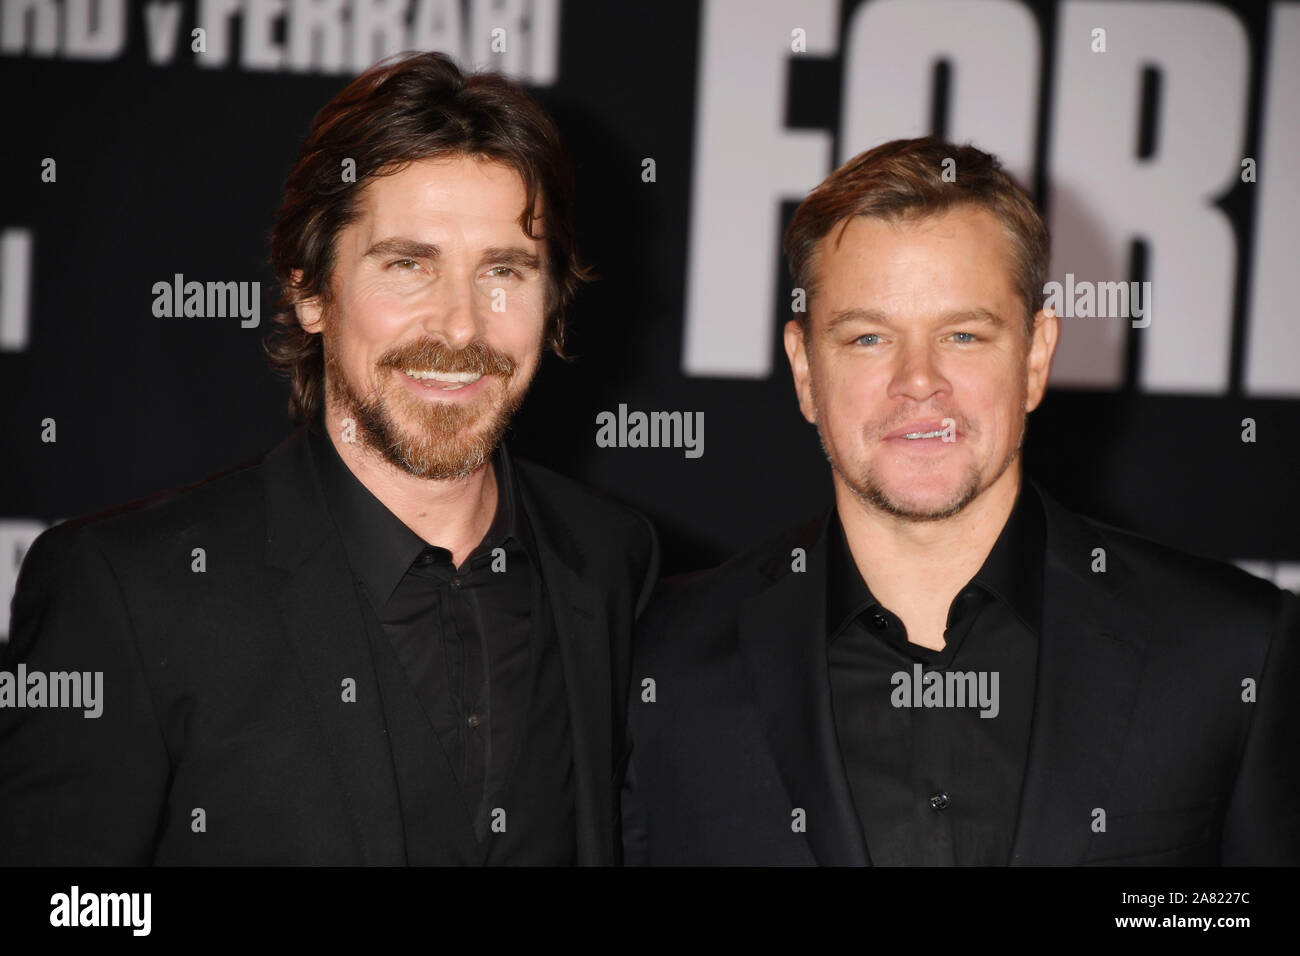 Hollywood Ca November 04 Christian Bale L And Matt Damon Attend The Premiere Of Fox S Ford V Ferrari At Tcl Chinese Theatre On November 04 2019 In Hollywood California Stock Photo Alamy